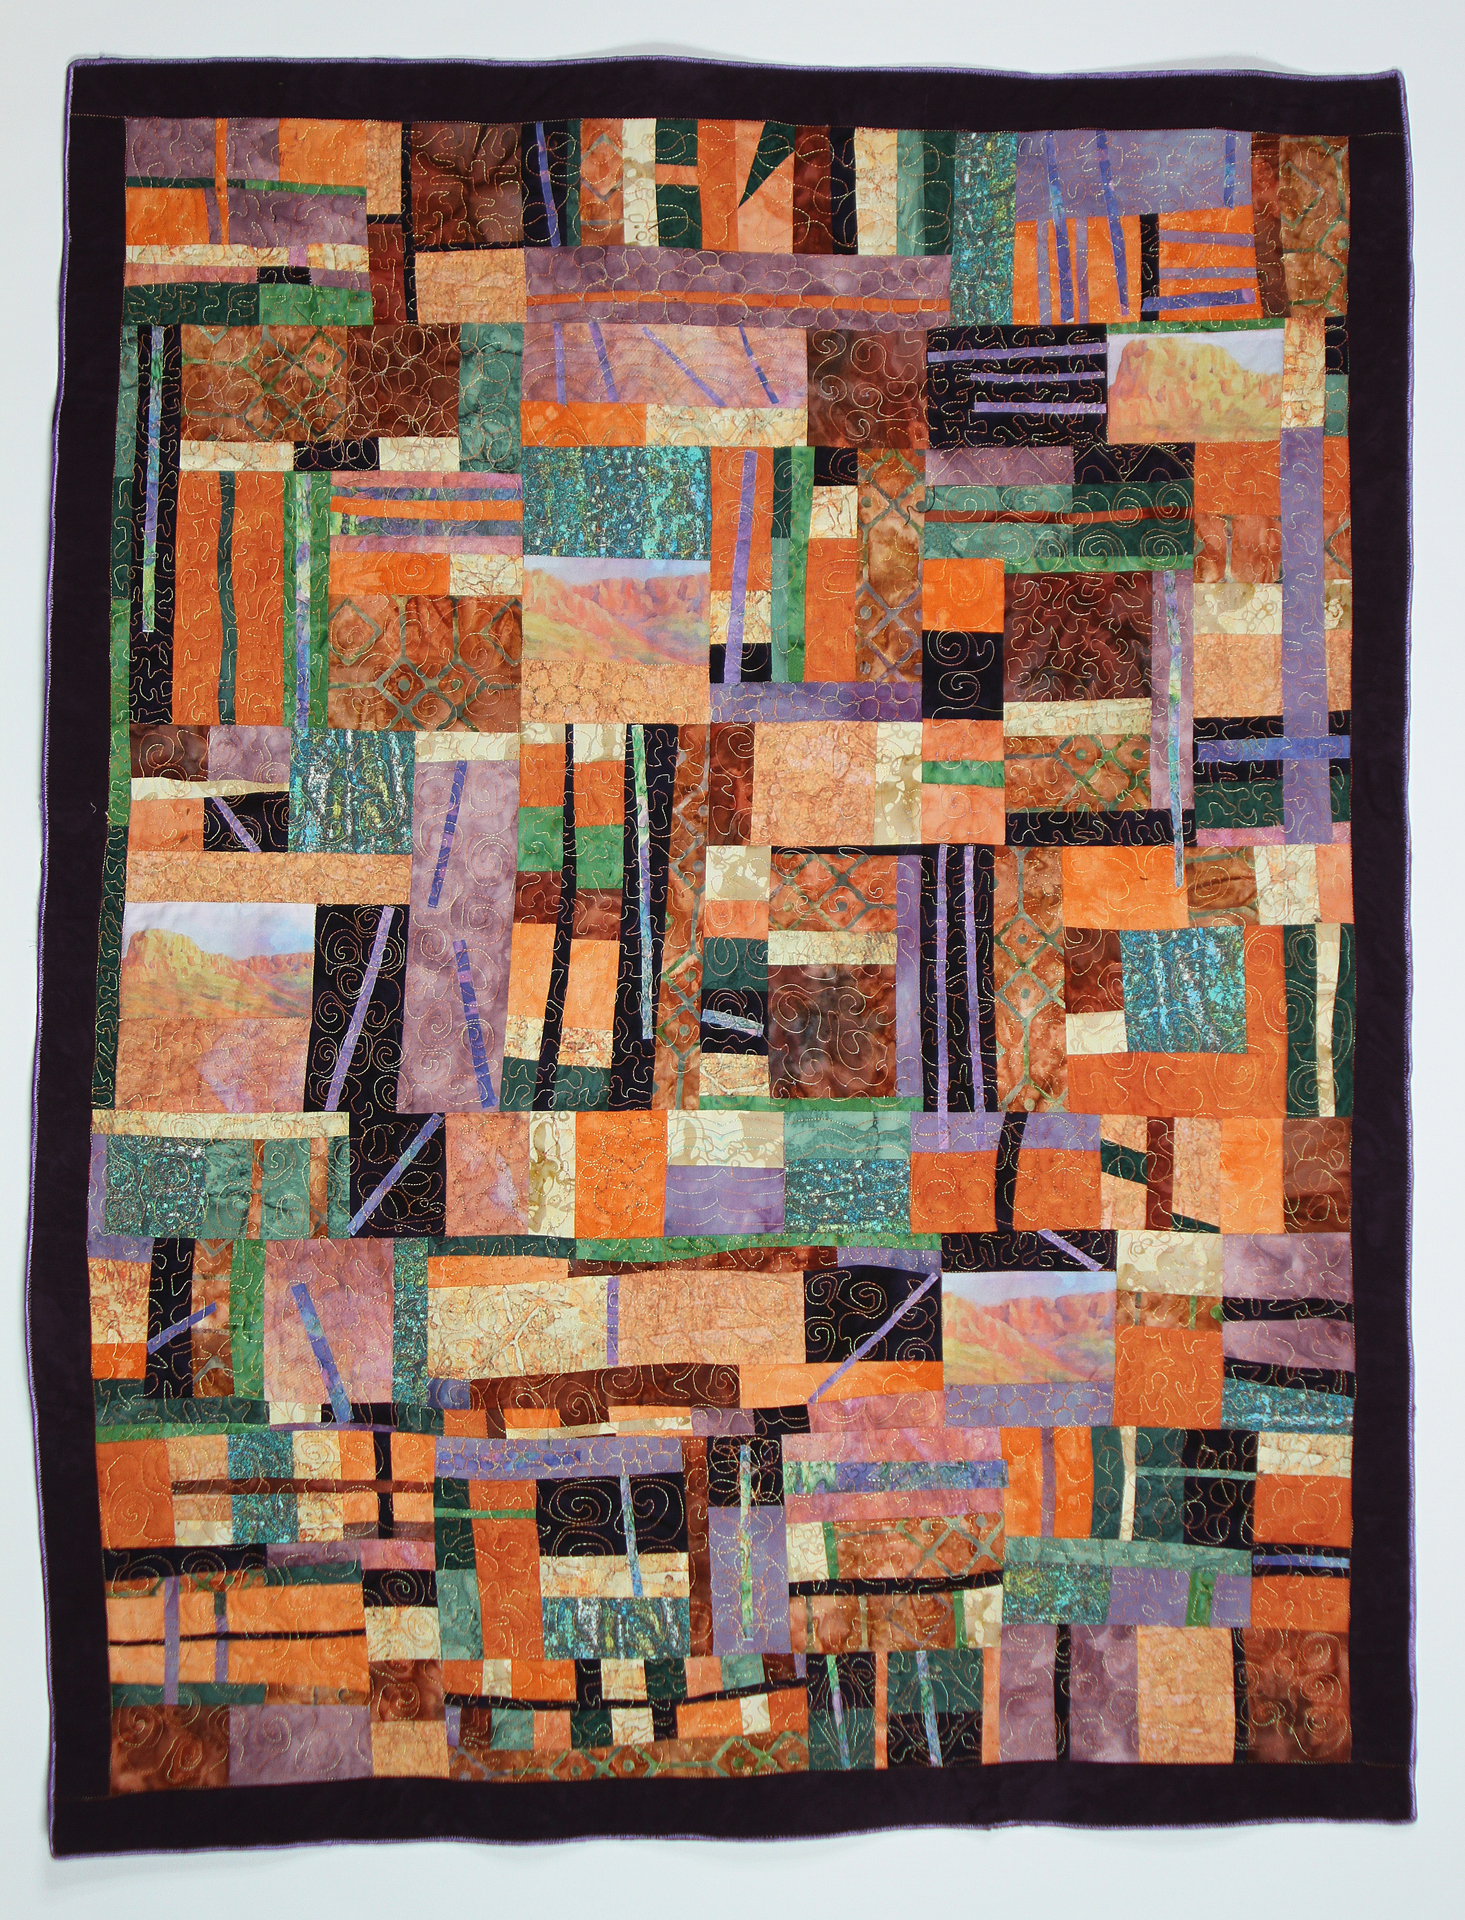 free form quilt piecing  Machine Free Form Piecing Archives - Casey Pike Textiles ...